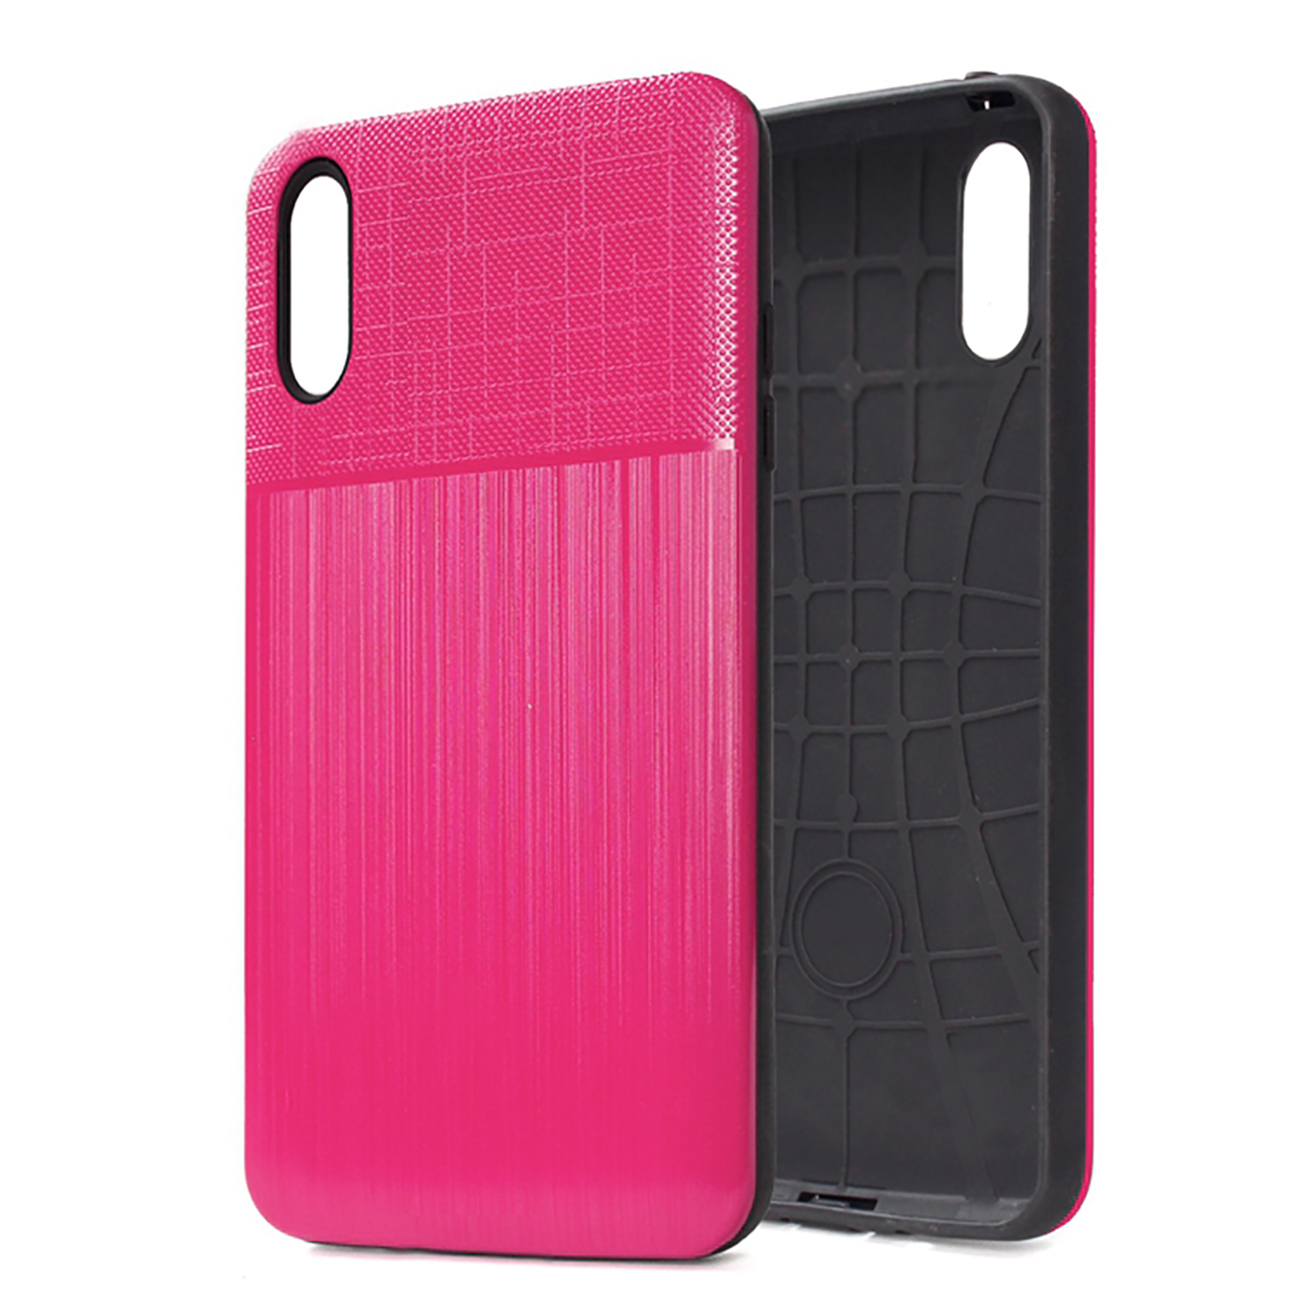 Reiko SAMSUNG GALAXY A10/M10E Lightweight Case In Hot Pink